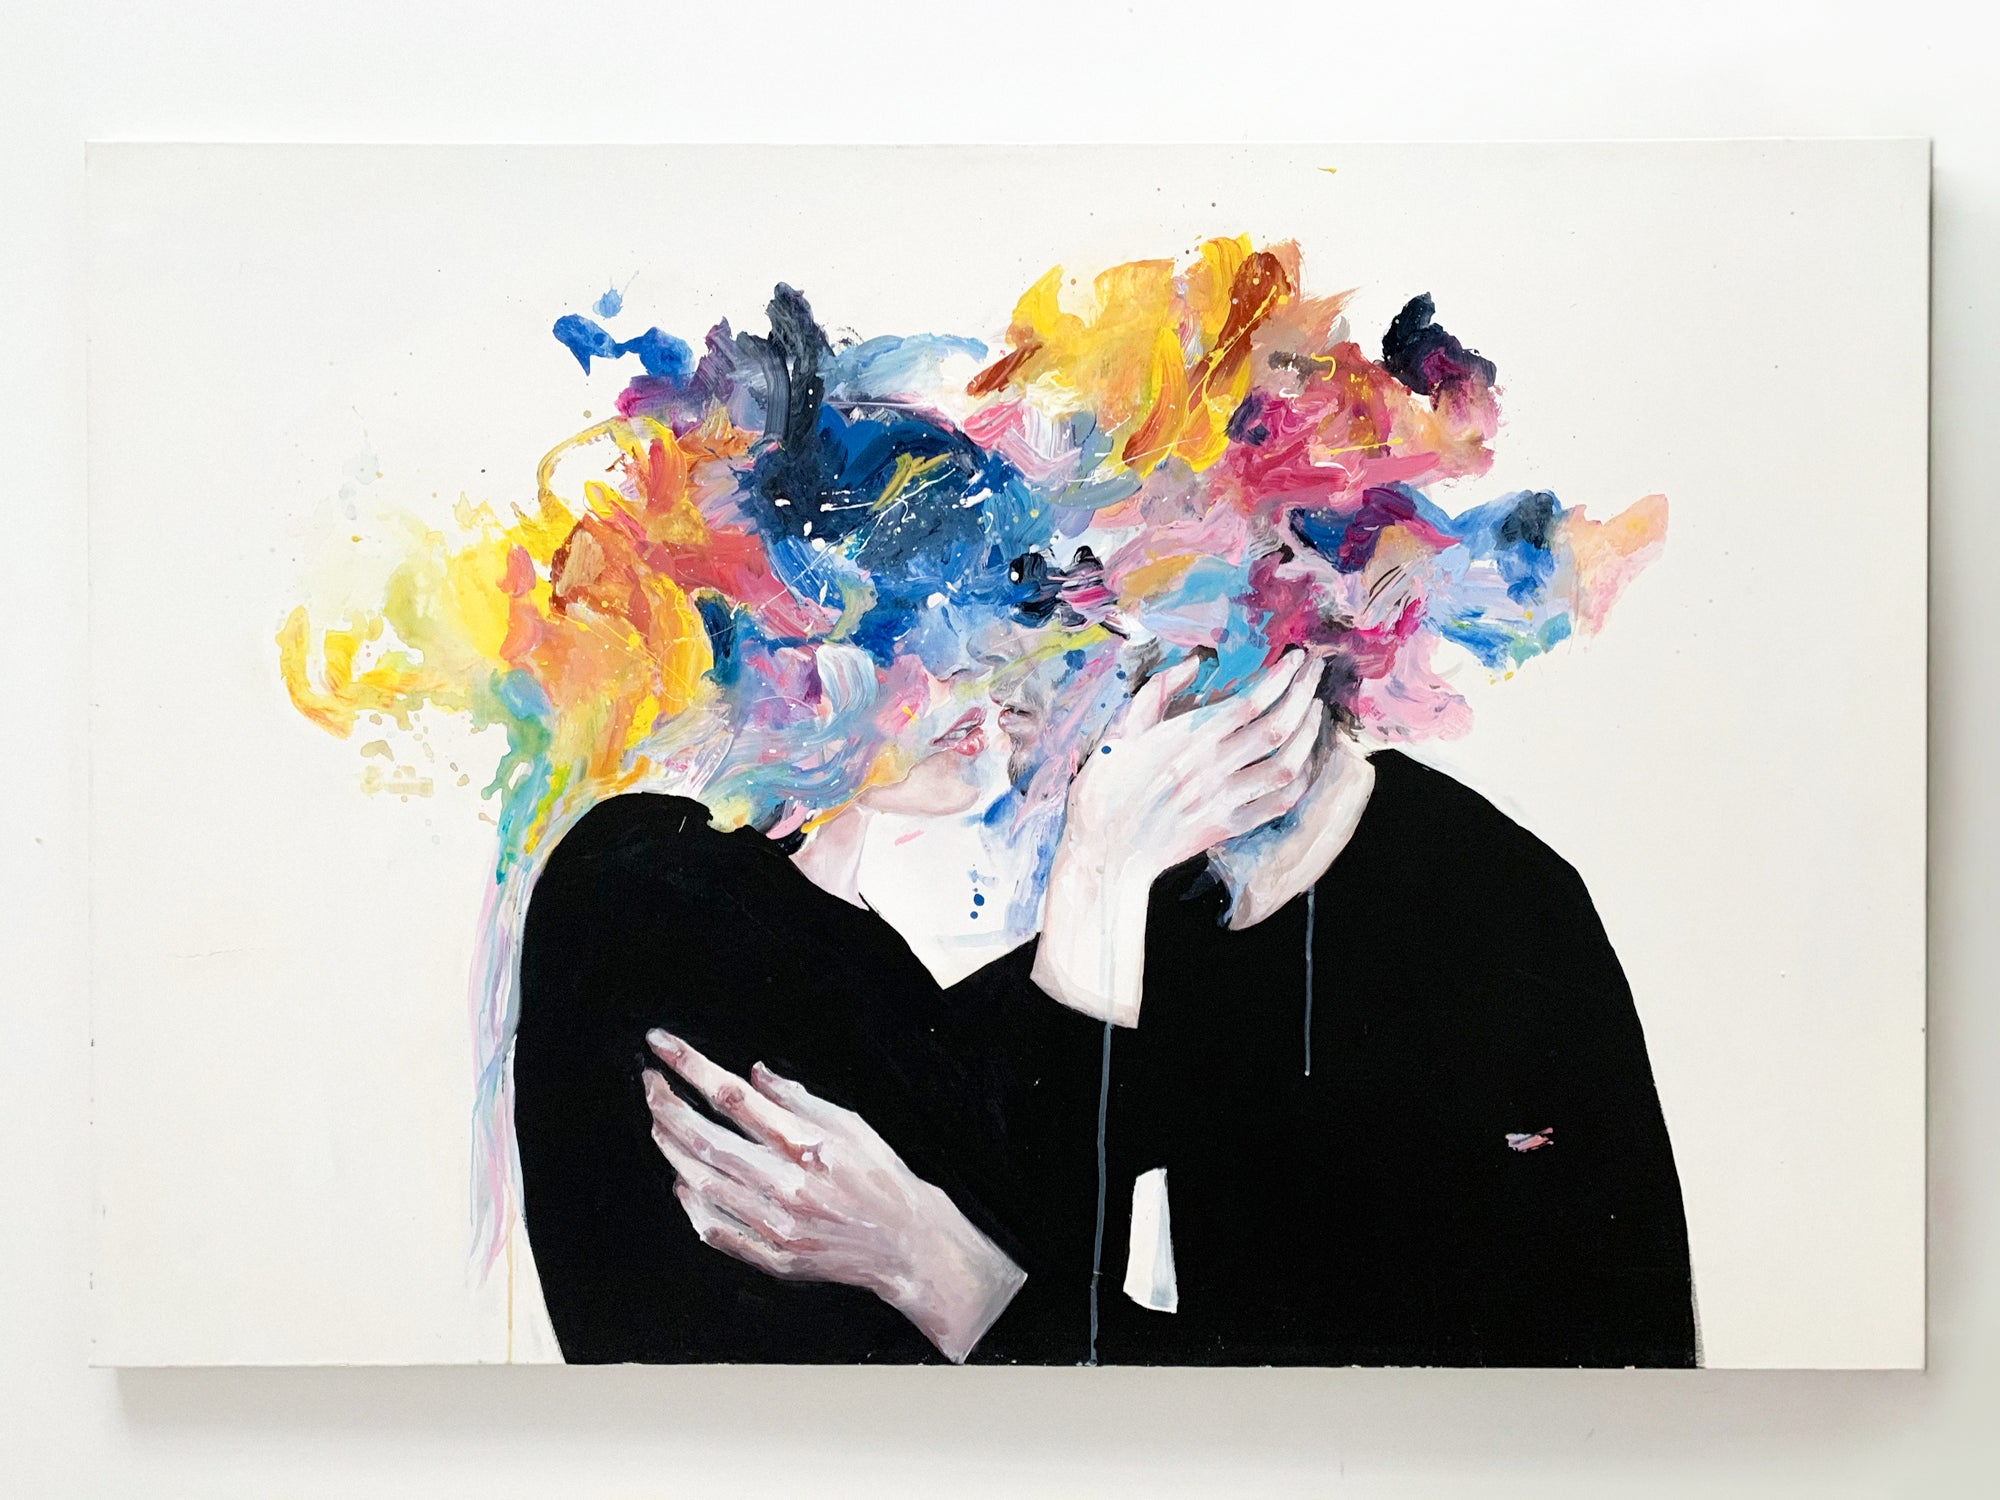 Agnes-Cecile intimacy on display